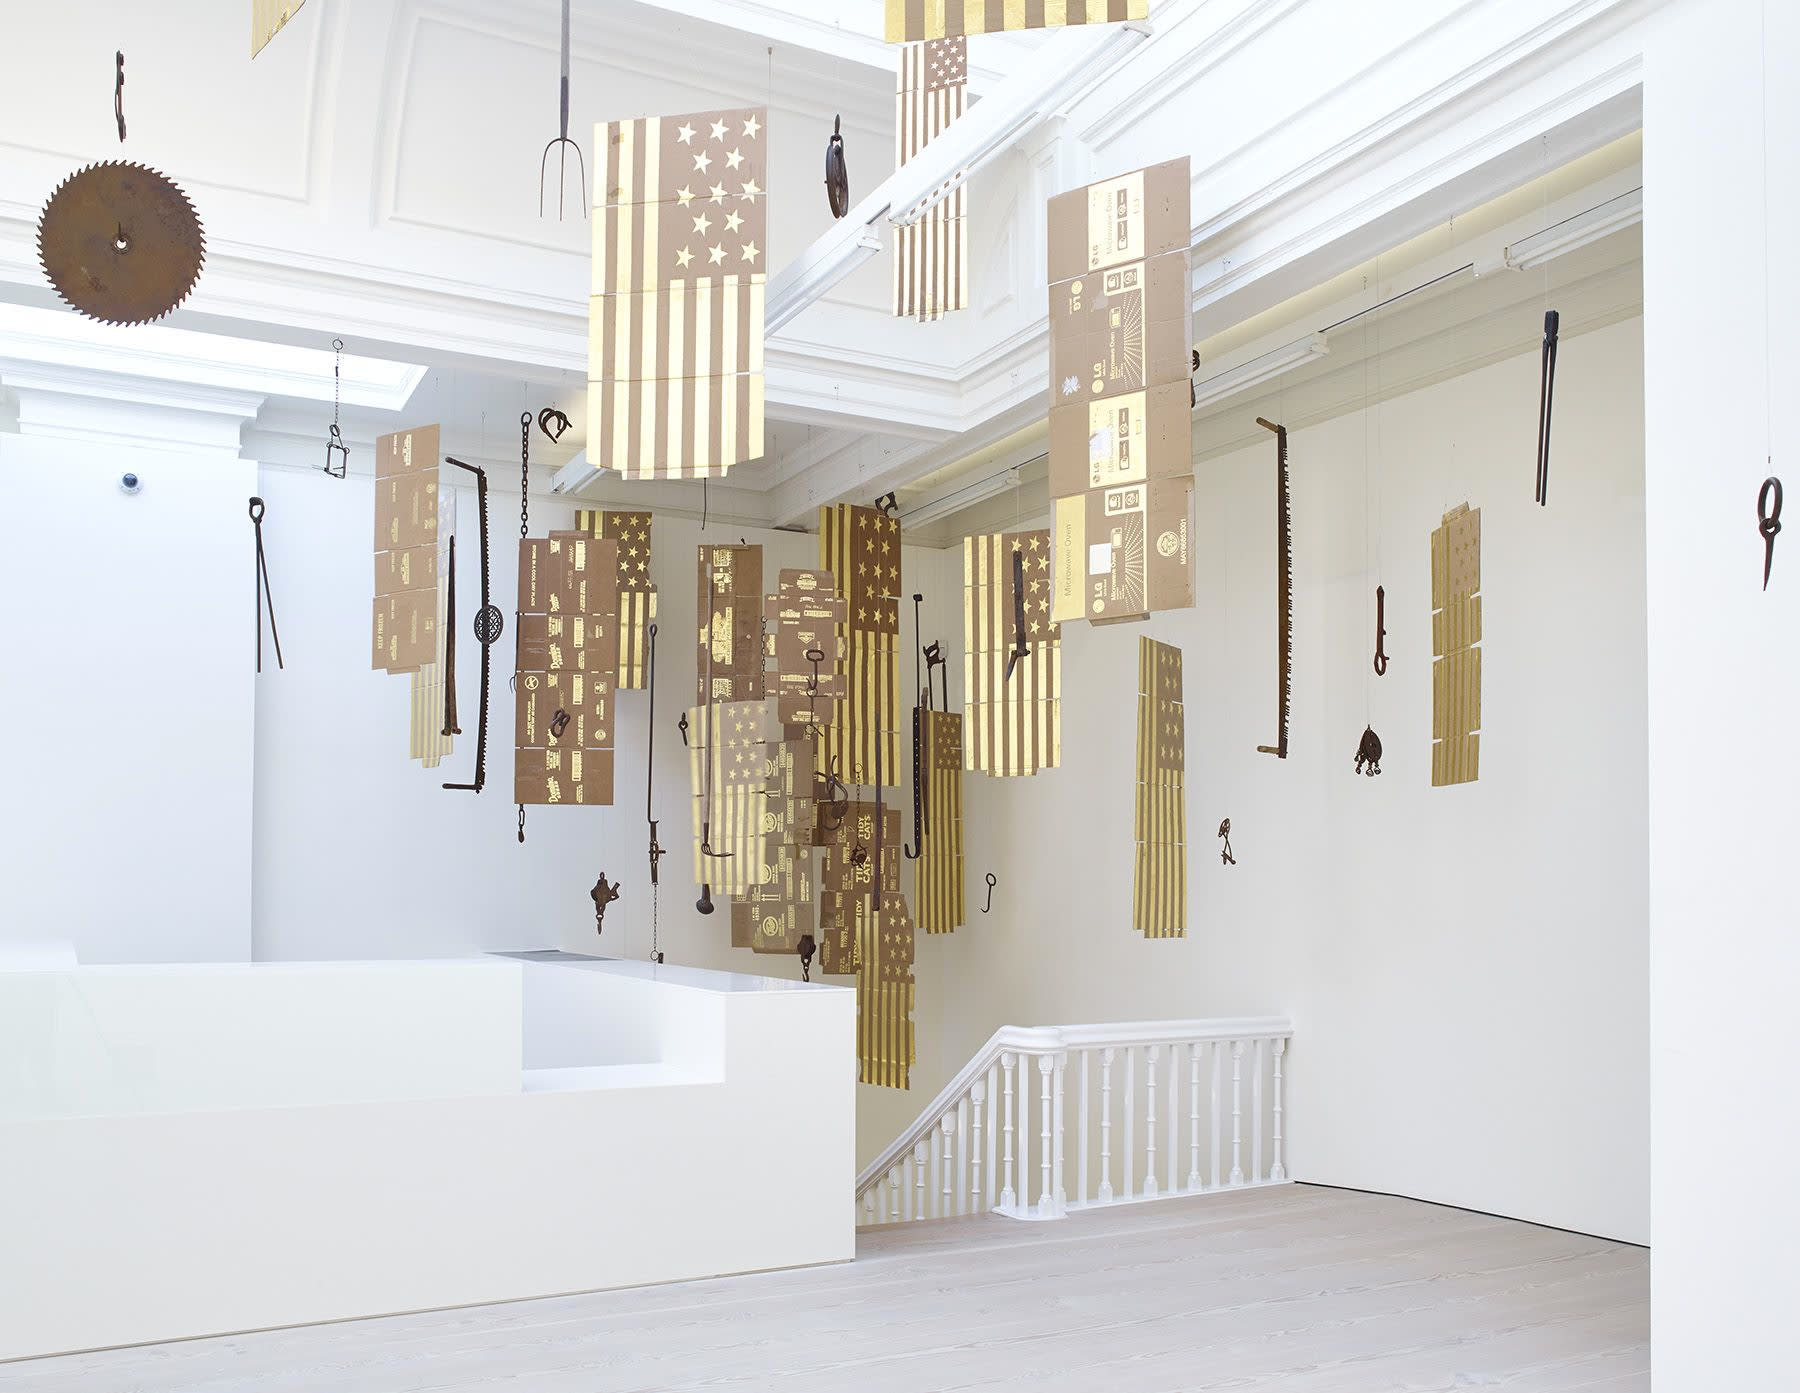 Gallery view of cardboard flags and numerous metal tools suspended from the gallery ceiling.